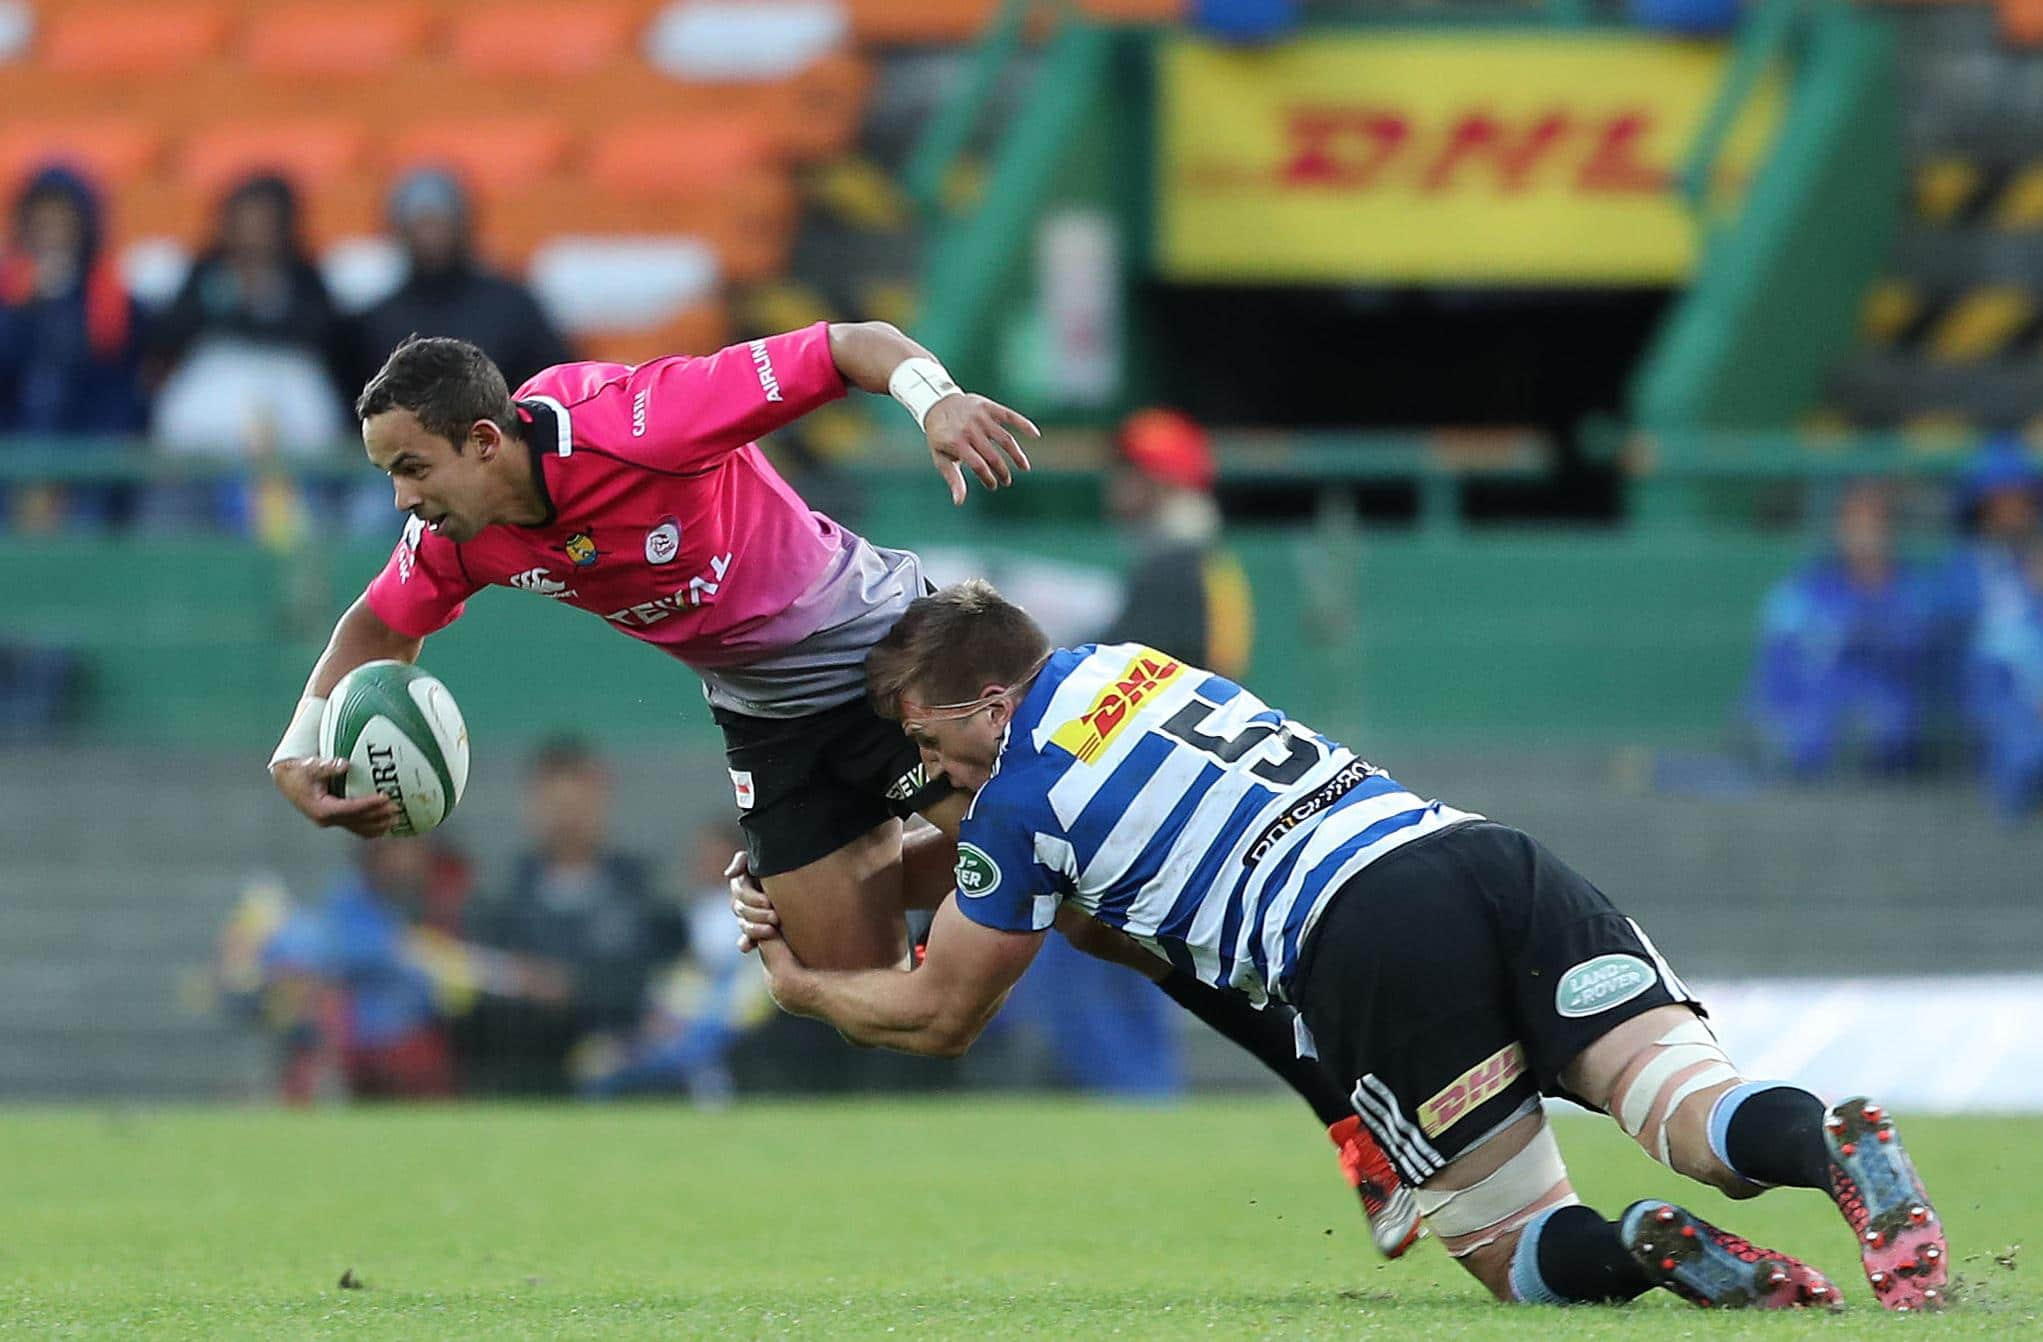 d21e86ddf010 A valiant Steval Pumas side competed fiercely with DHL Western Province  until the very last minute at Newlands on Saturday evening